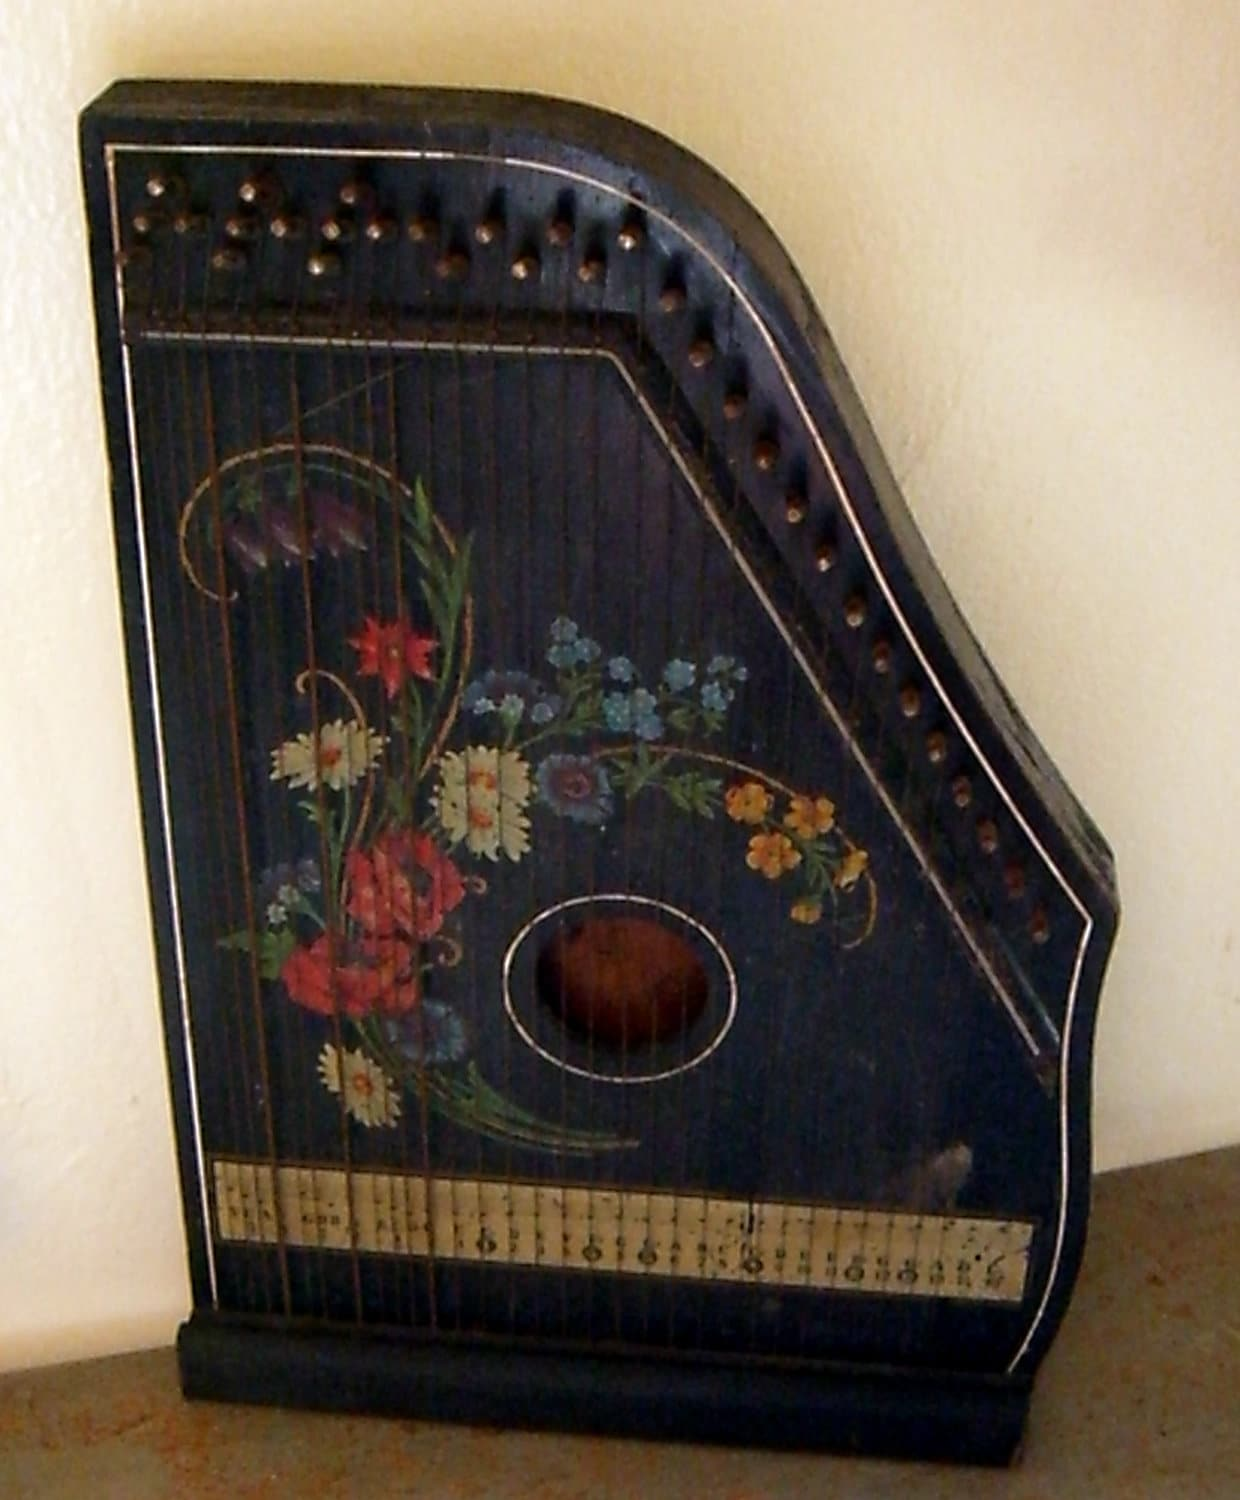 Antique Zither Harp Fretless Musima Zither Germany By